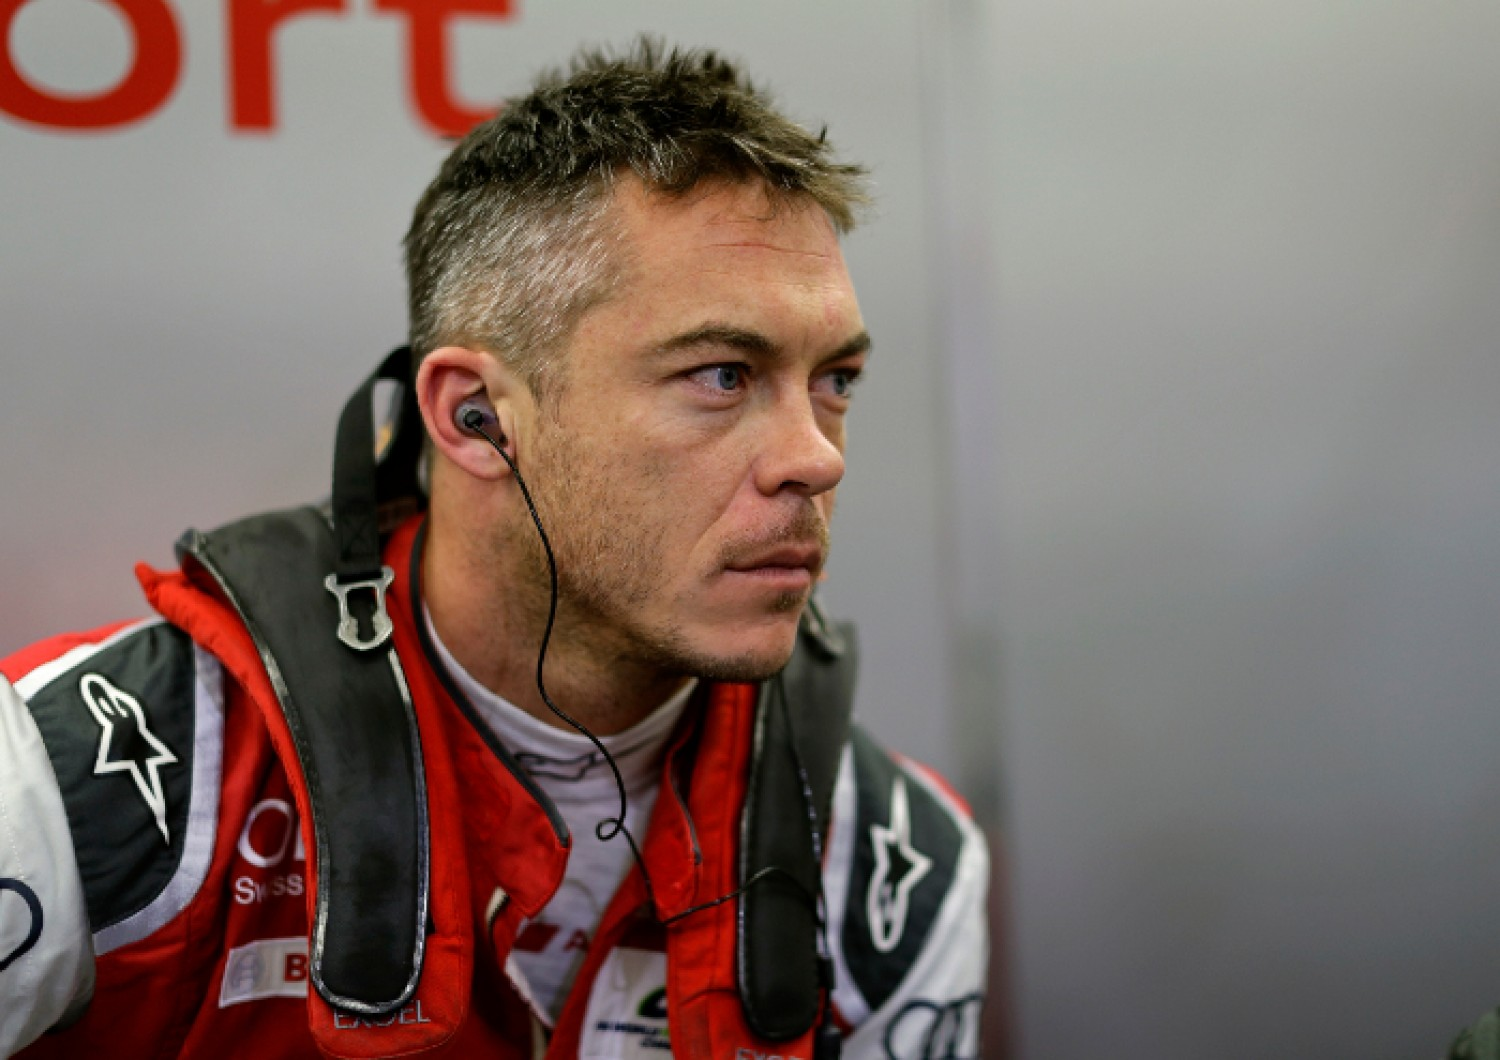 André Lotterer with the Audi Sport Team WRT at the Total 24 Hours of Spa